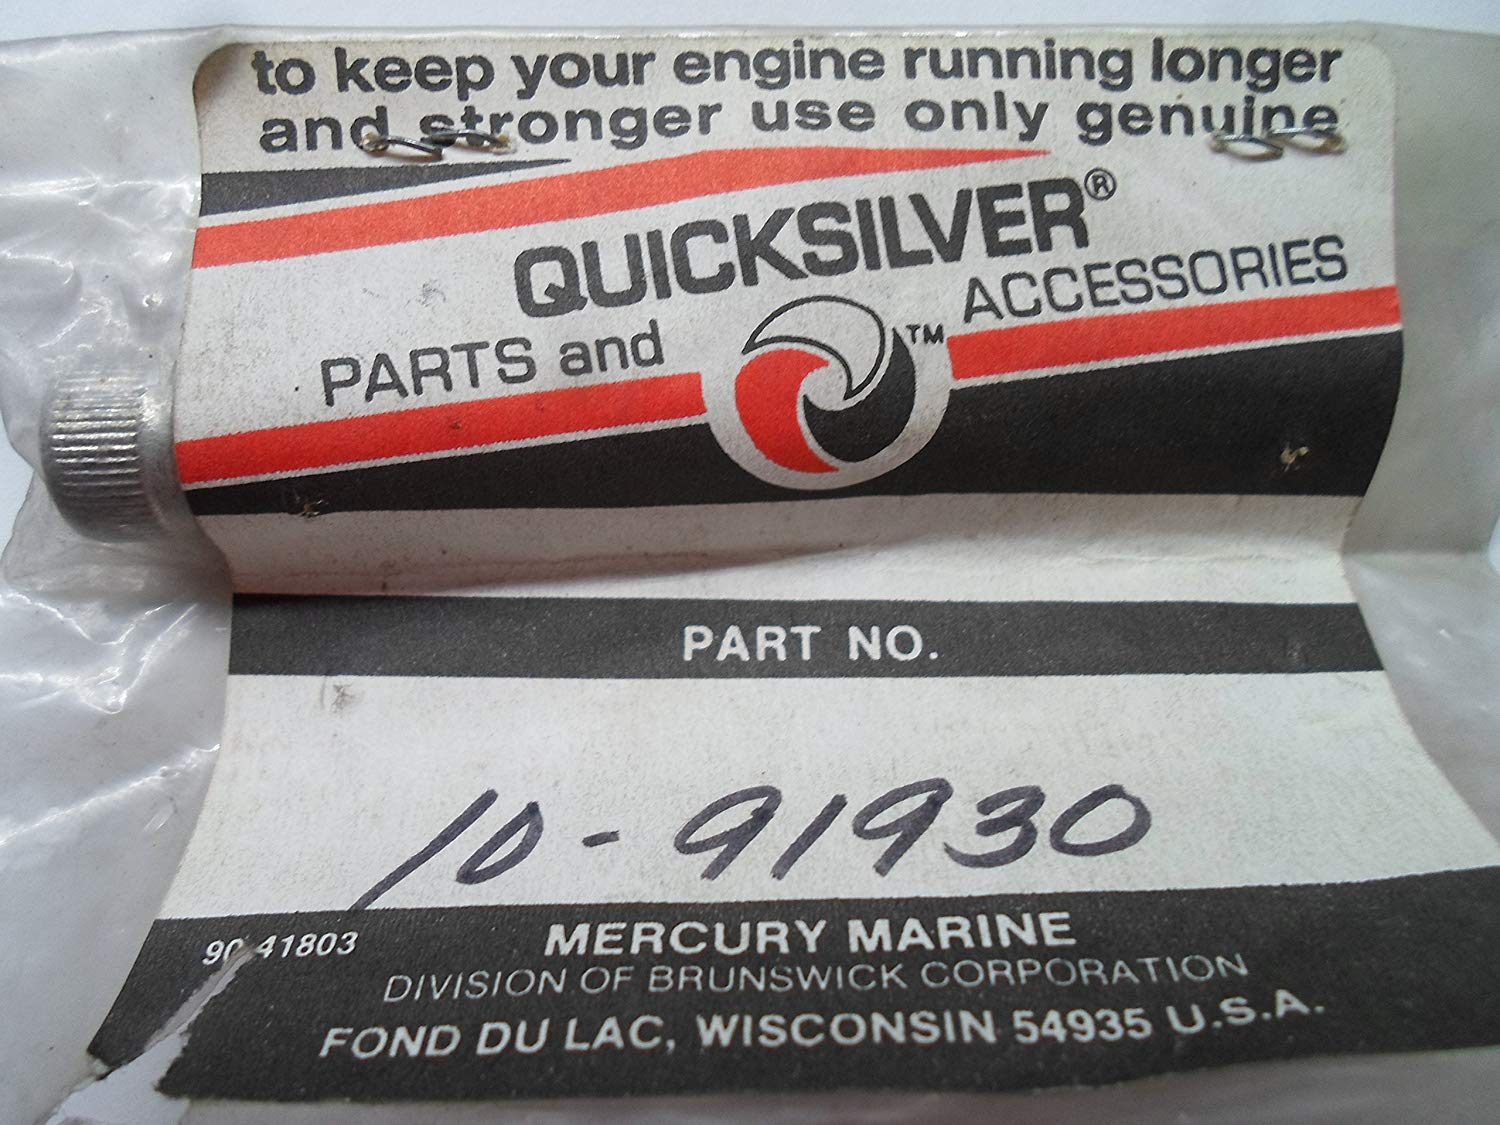 Quicksilver / Mercury 10-91930